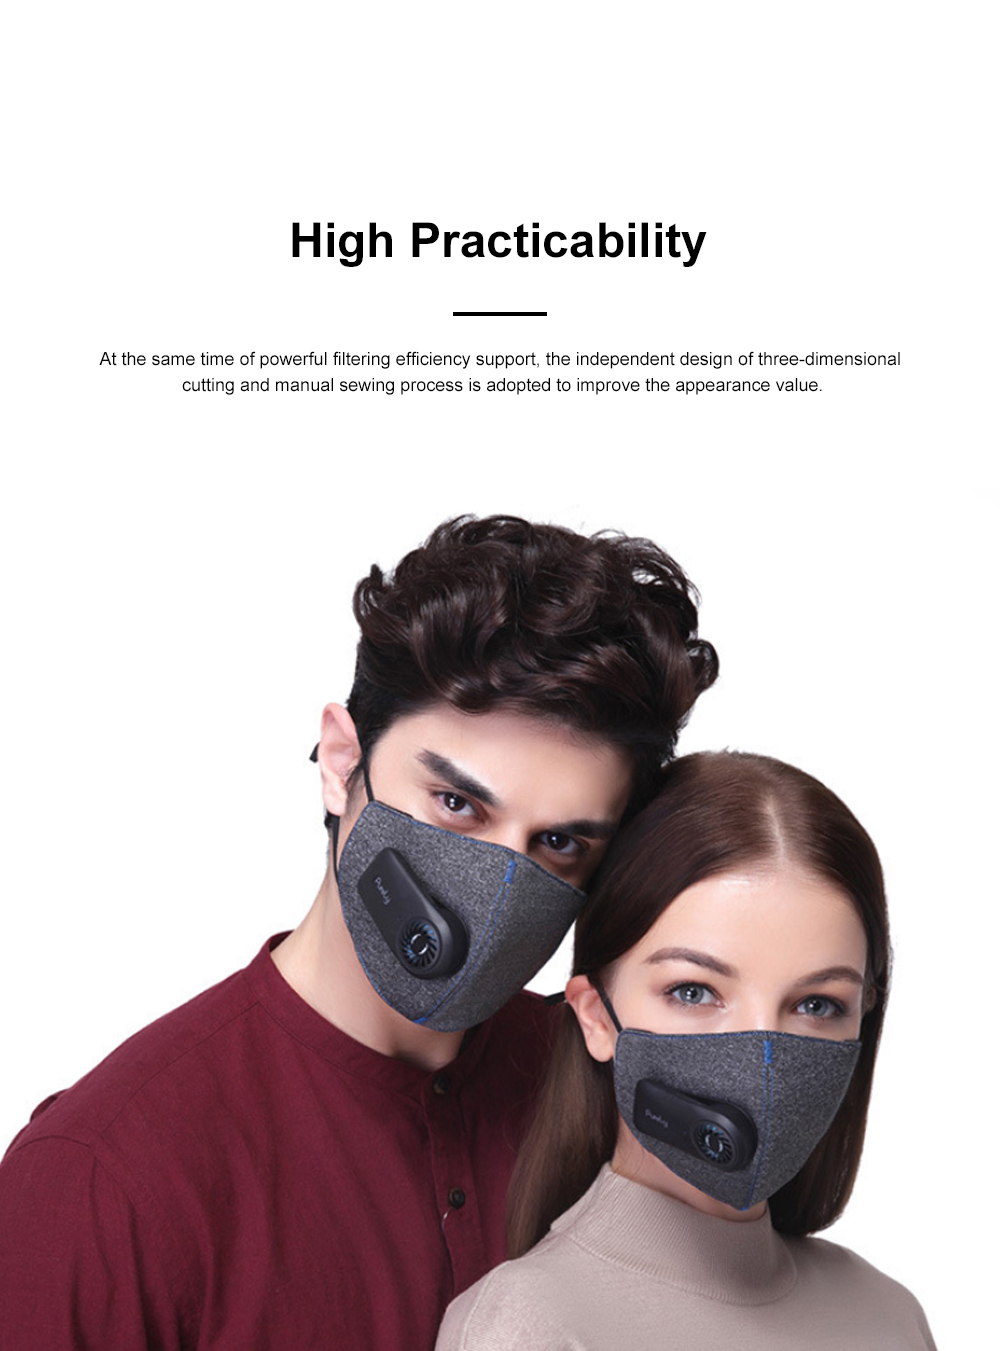 MI Purely Clean Air Haze Mask Anti-smog Anti Haze PM2.5 Dust Earhook Mask With Filter 2019 NEW 8